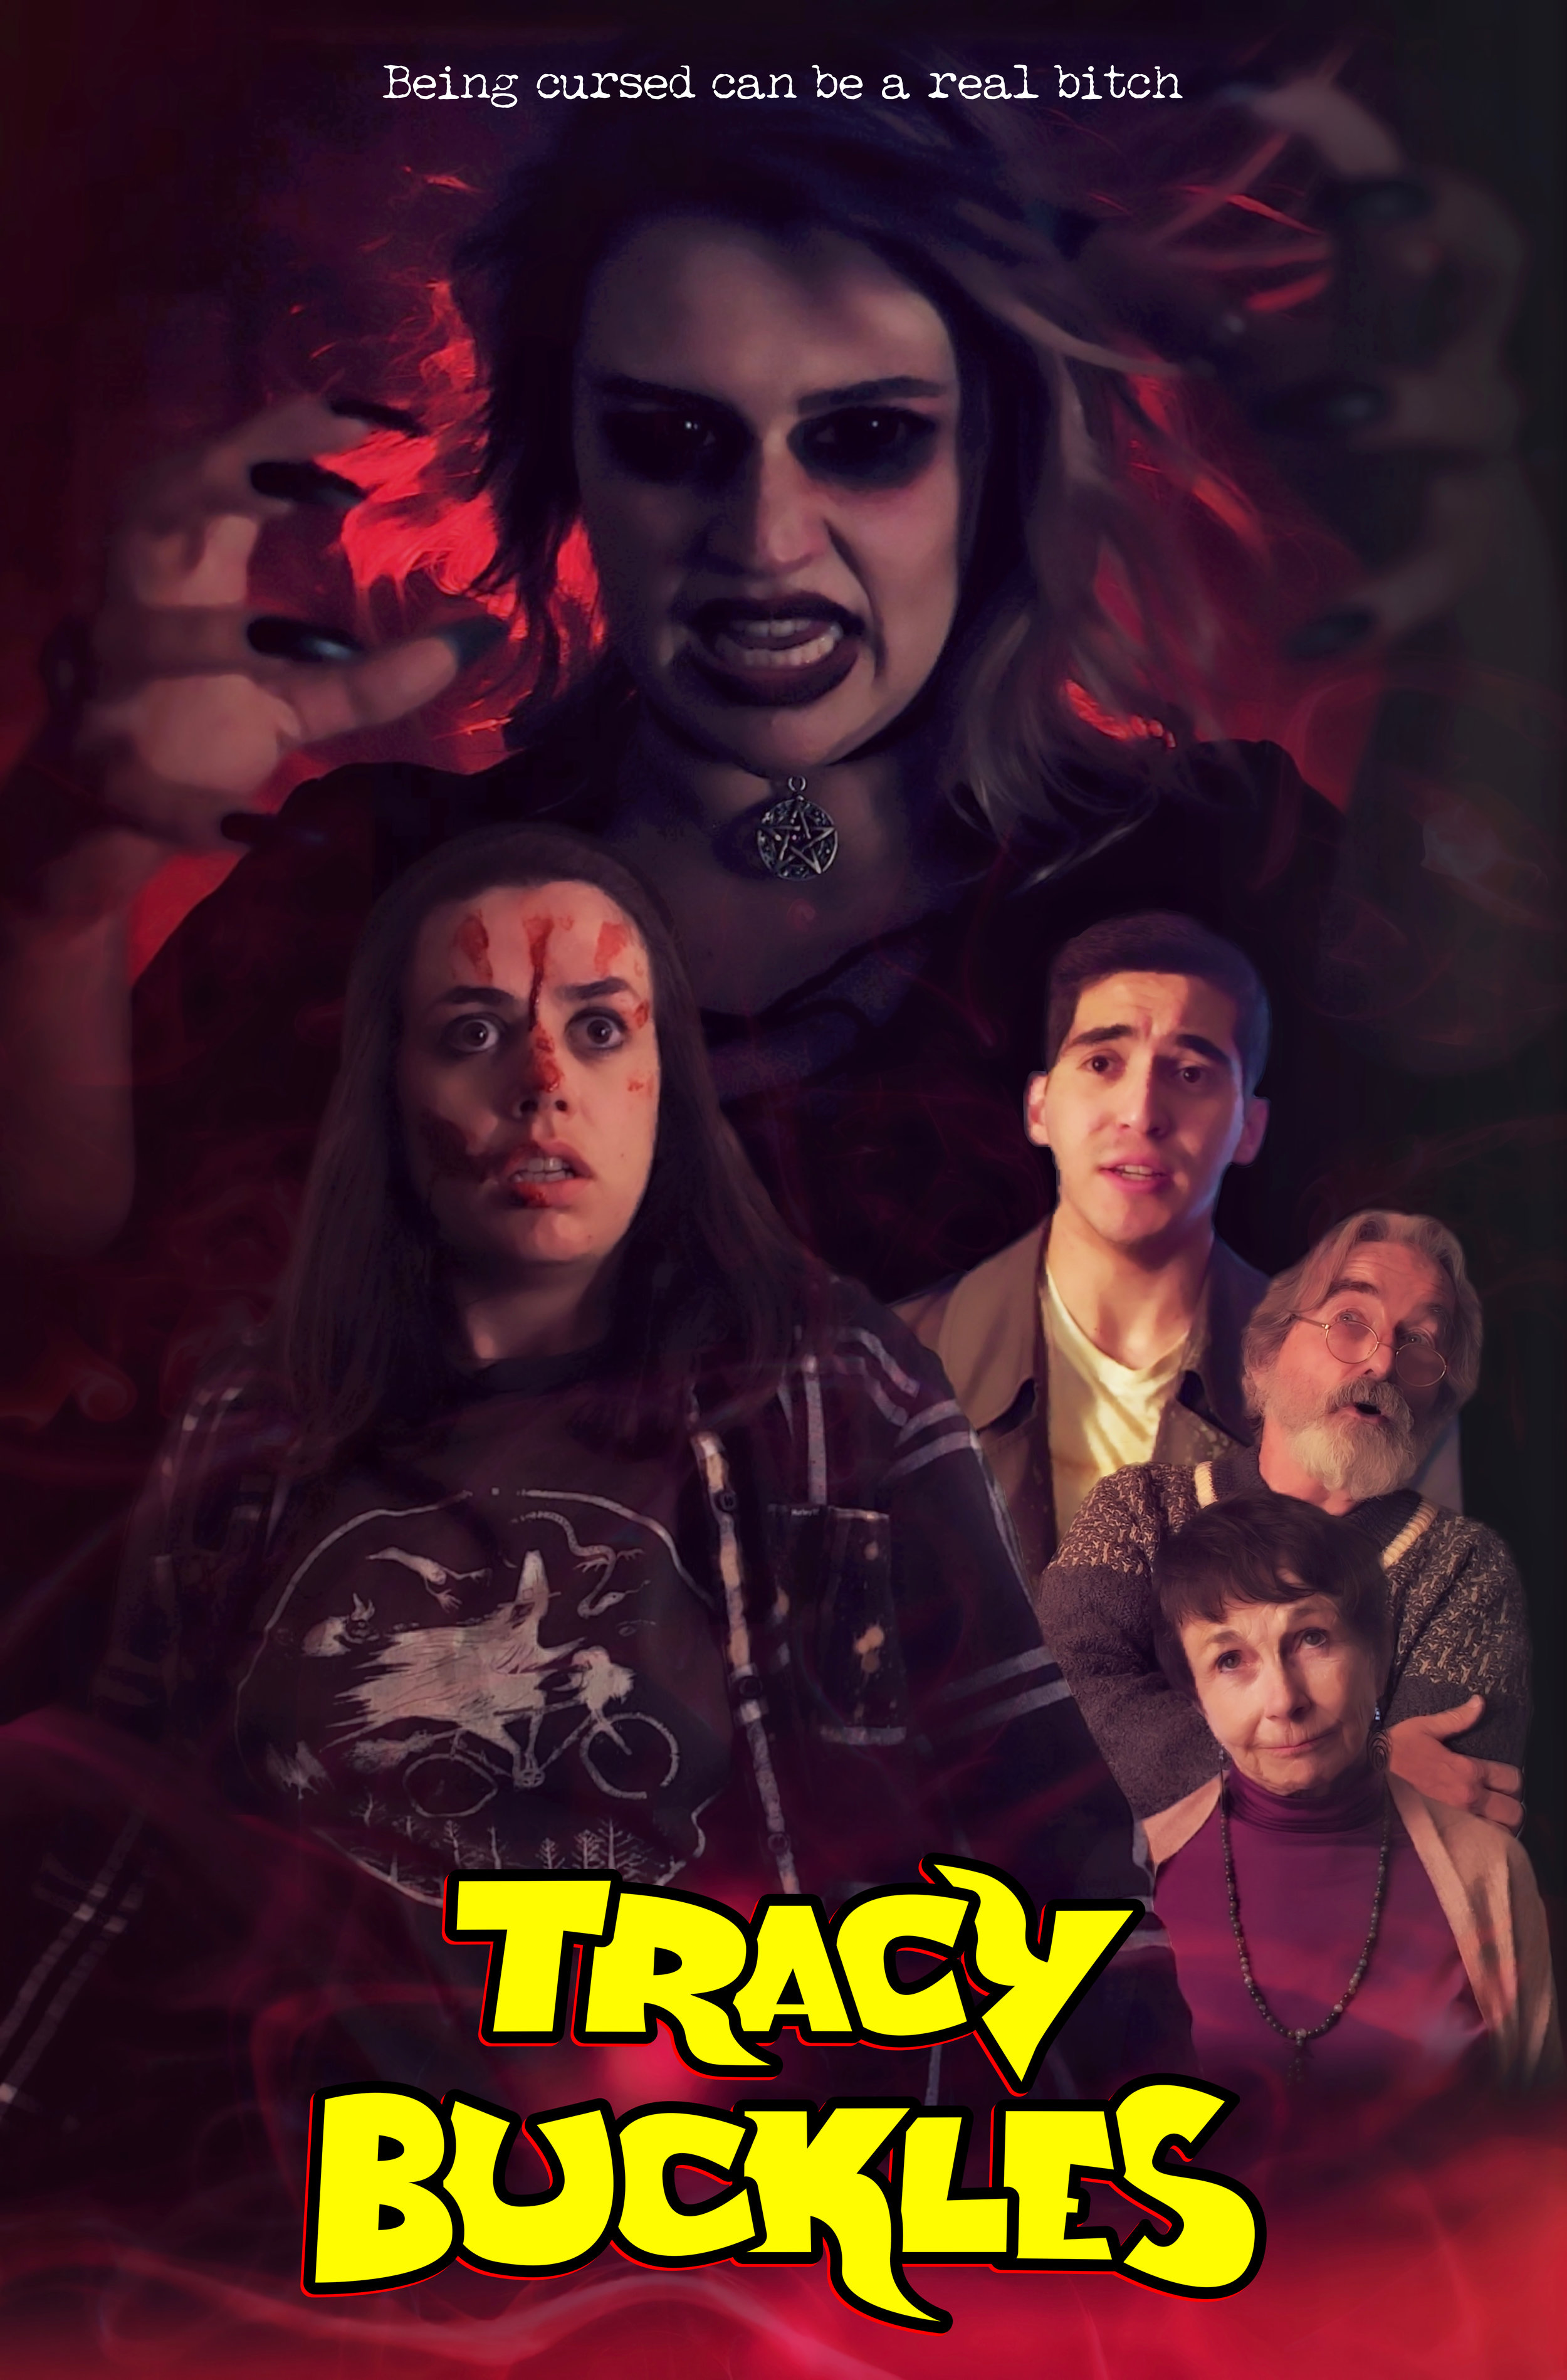 Tracy Buckles Poster - 2.jpg